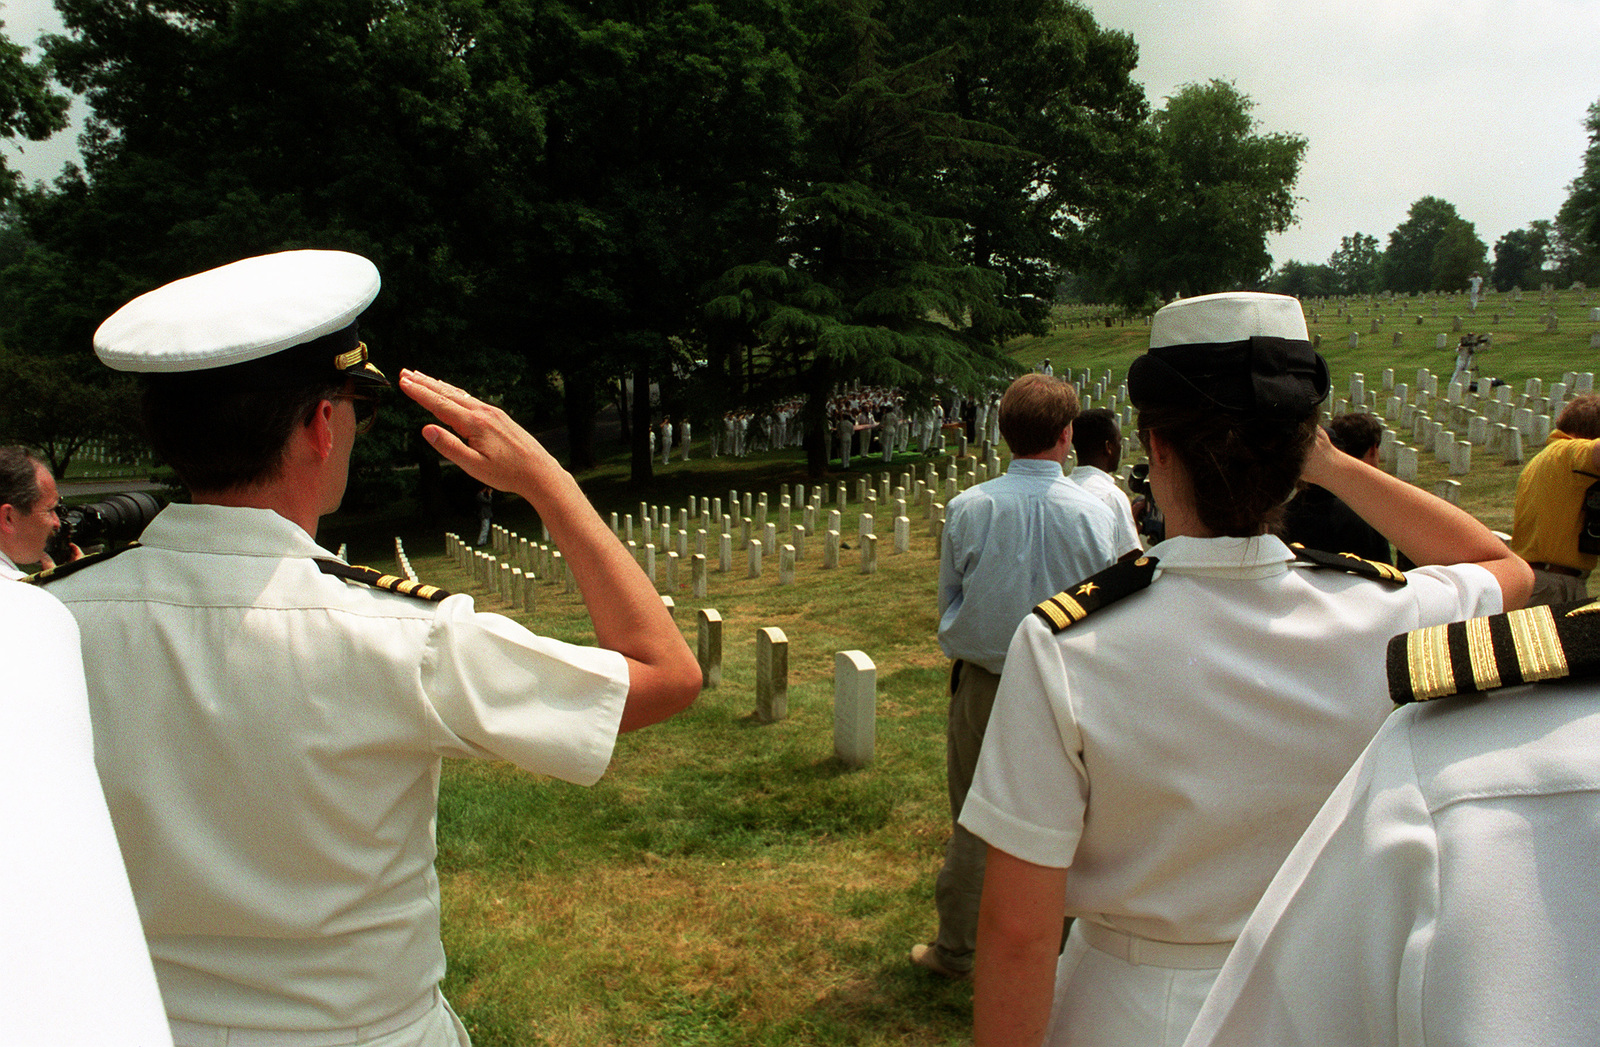 Two Navy officers salute during a memorial service at Arlington National Cemetery for LT. CMDR. Barry T. Cooke of Attack Squadron 36 (VA-36). Cooke and his bombardier/navigator, LT. Patrick K. Connor, were killed when their A-6E Intruder aircraft was shot down on February 2, 1991, during Operation Desert Storm